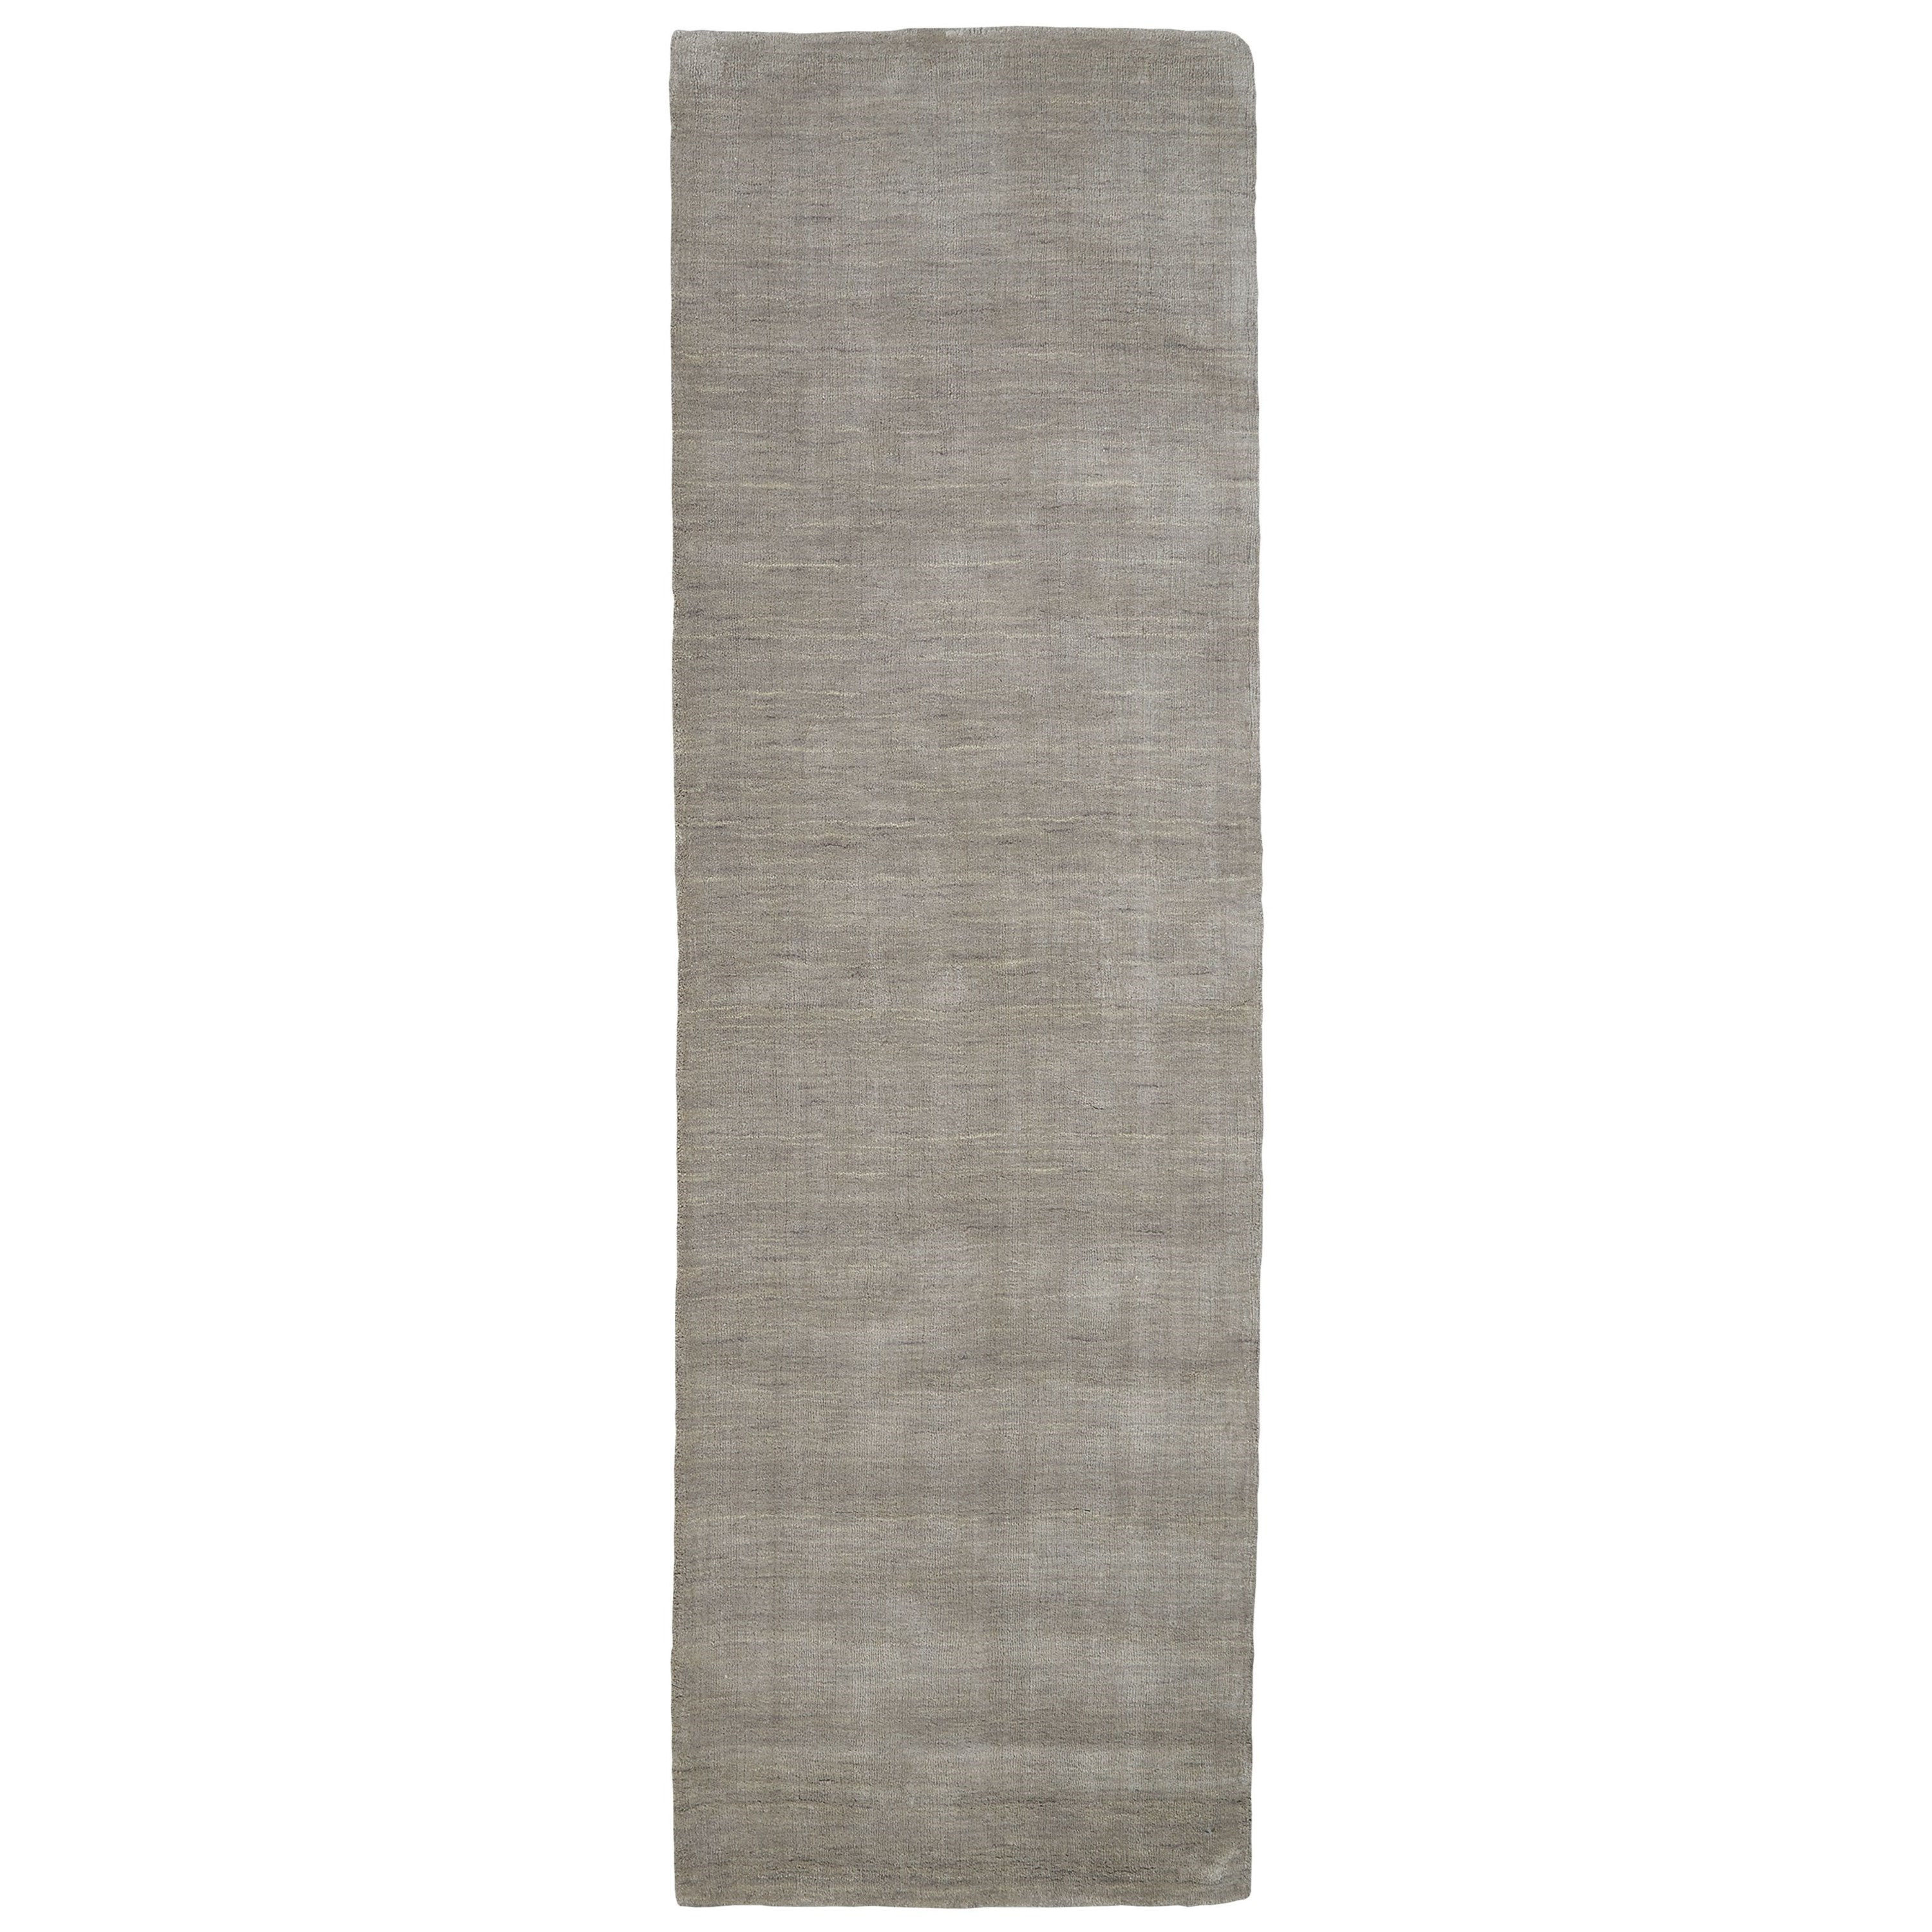 """Luna Light Gray 2'-6"""" x 8' Runner Rug by Feizy Rugs at Sprintz Furniture"""